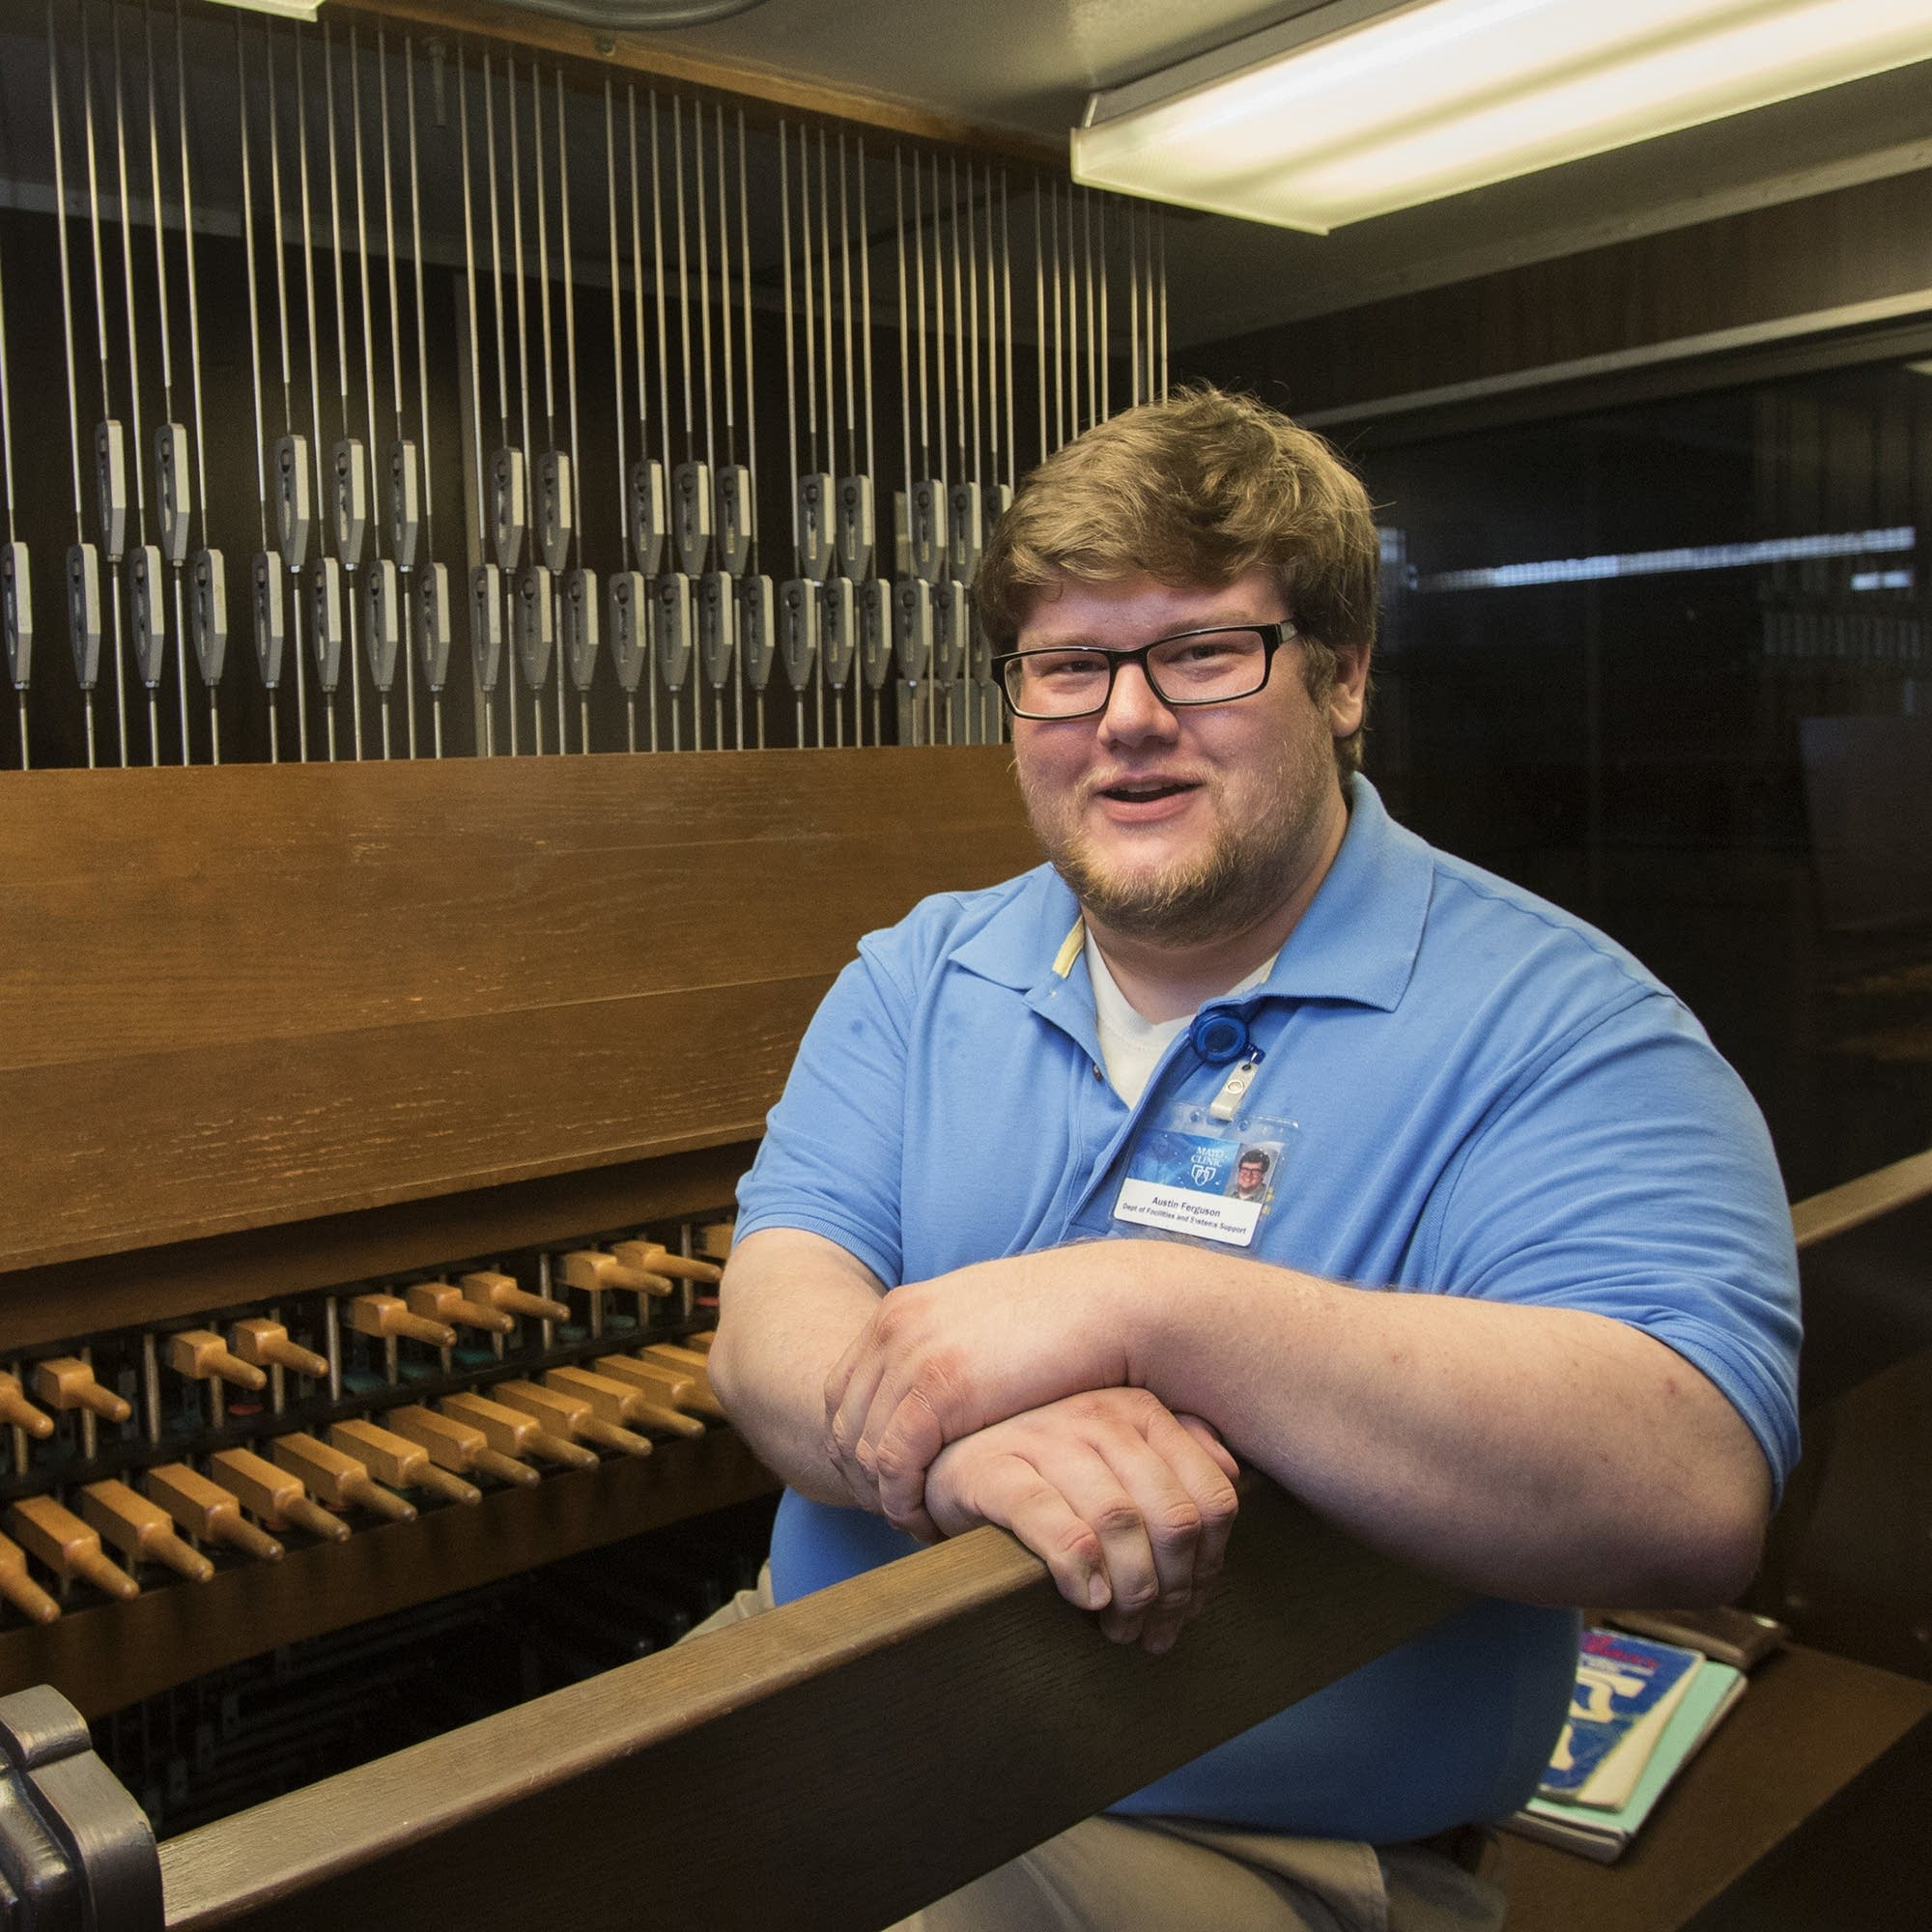 In a tower 300 feet above Rochester, a new carillonneur